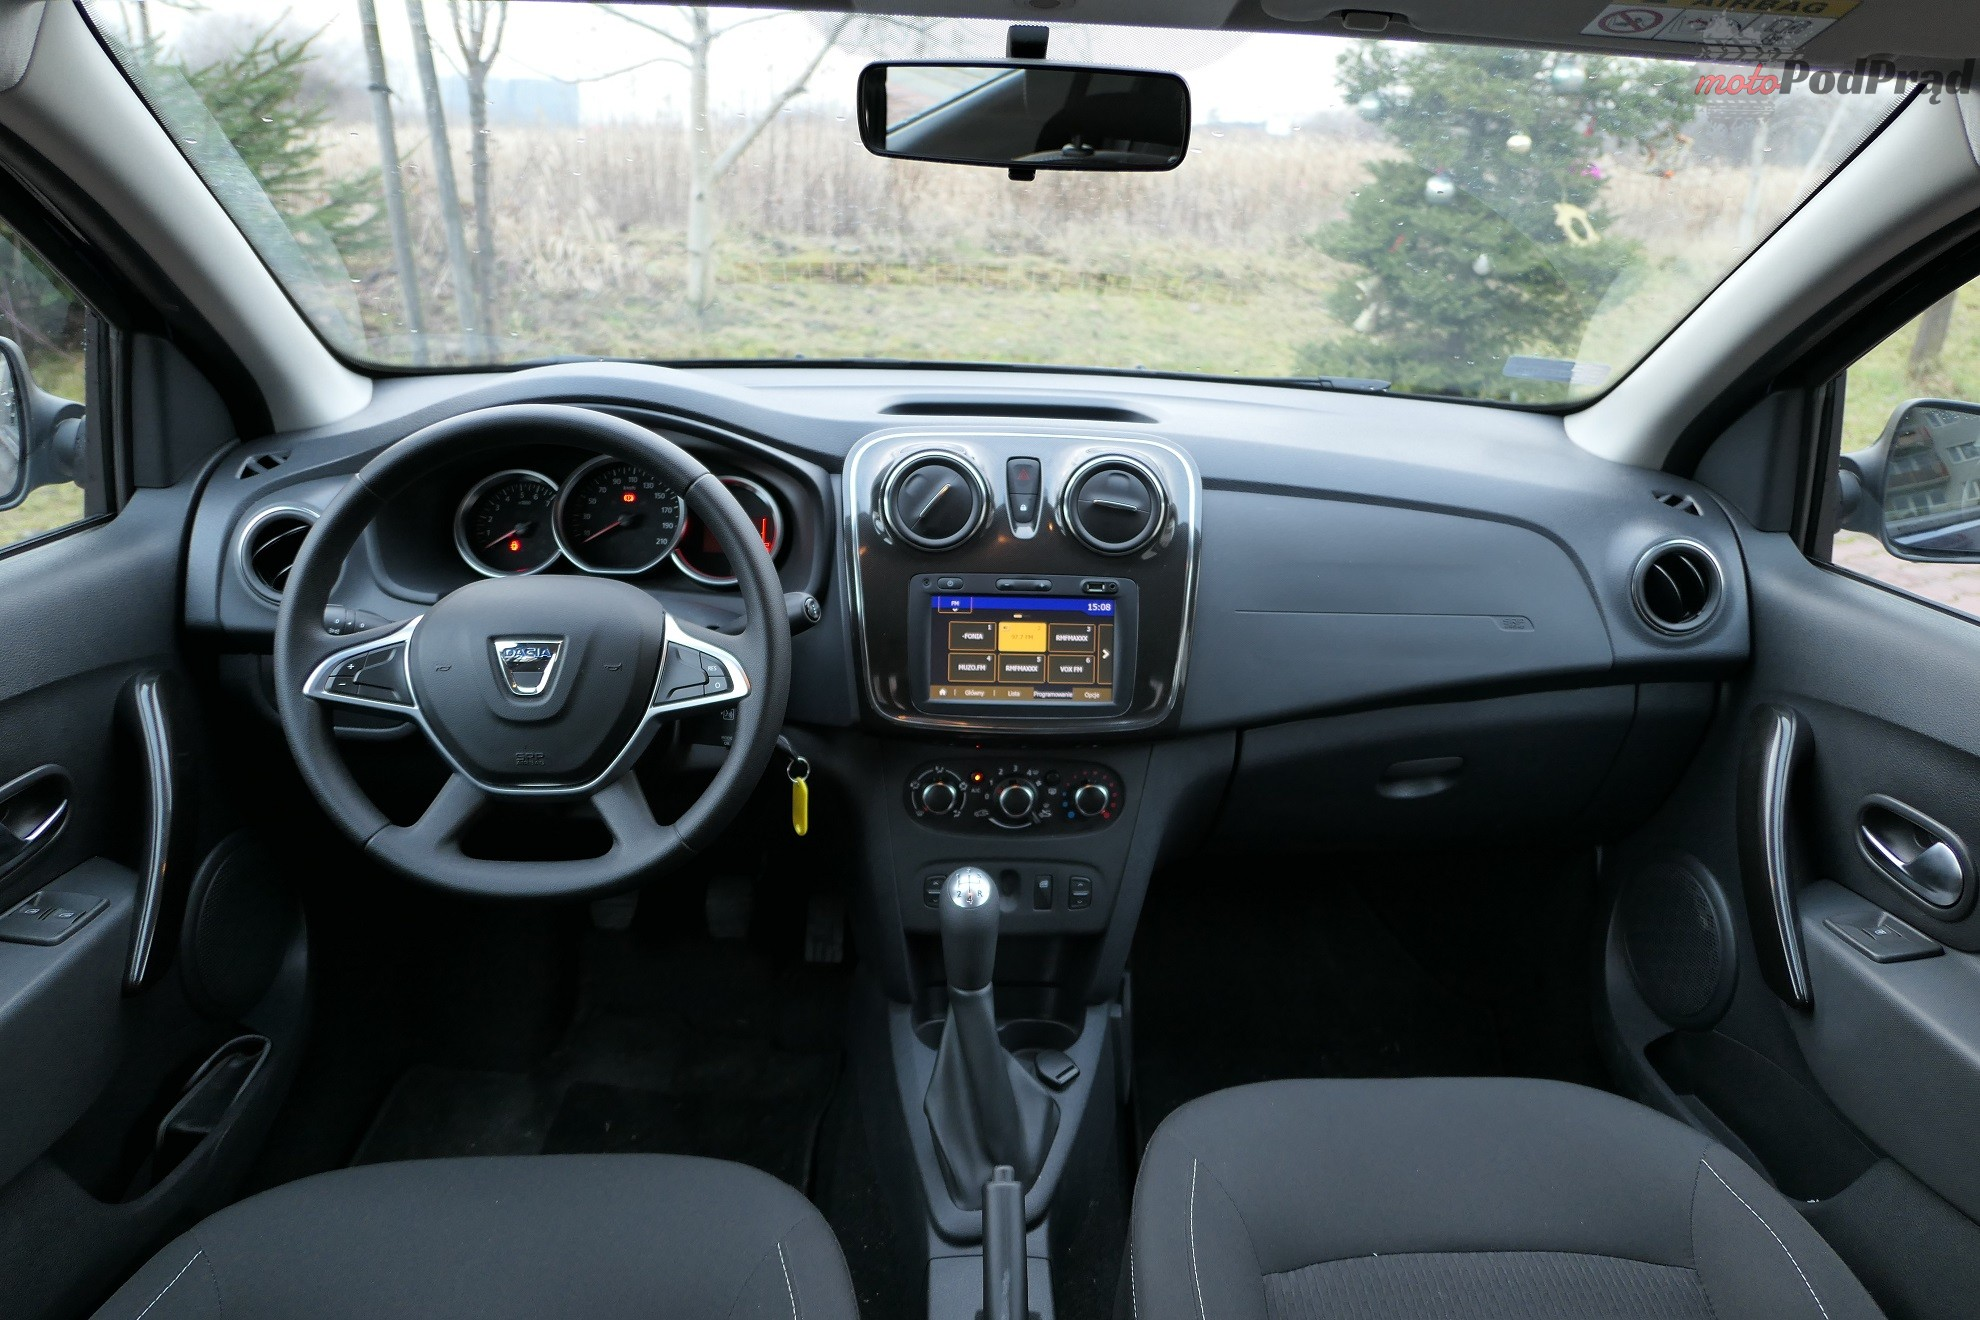 test dacia sandero 1 0 75 km w cenie dodatk w moto. Black Bedroom Furniture Sets. Home Design Ideas